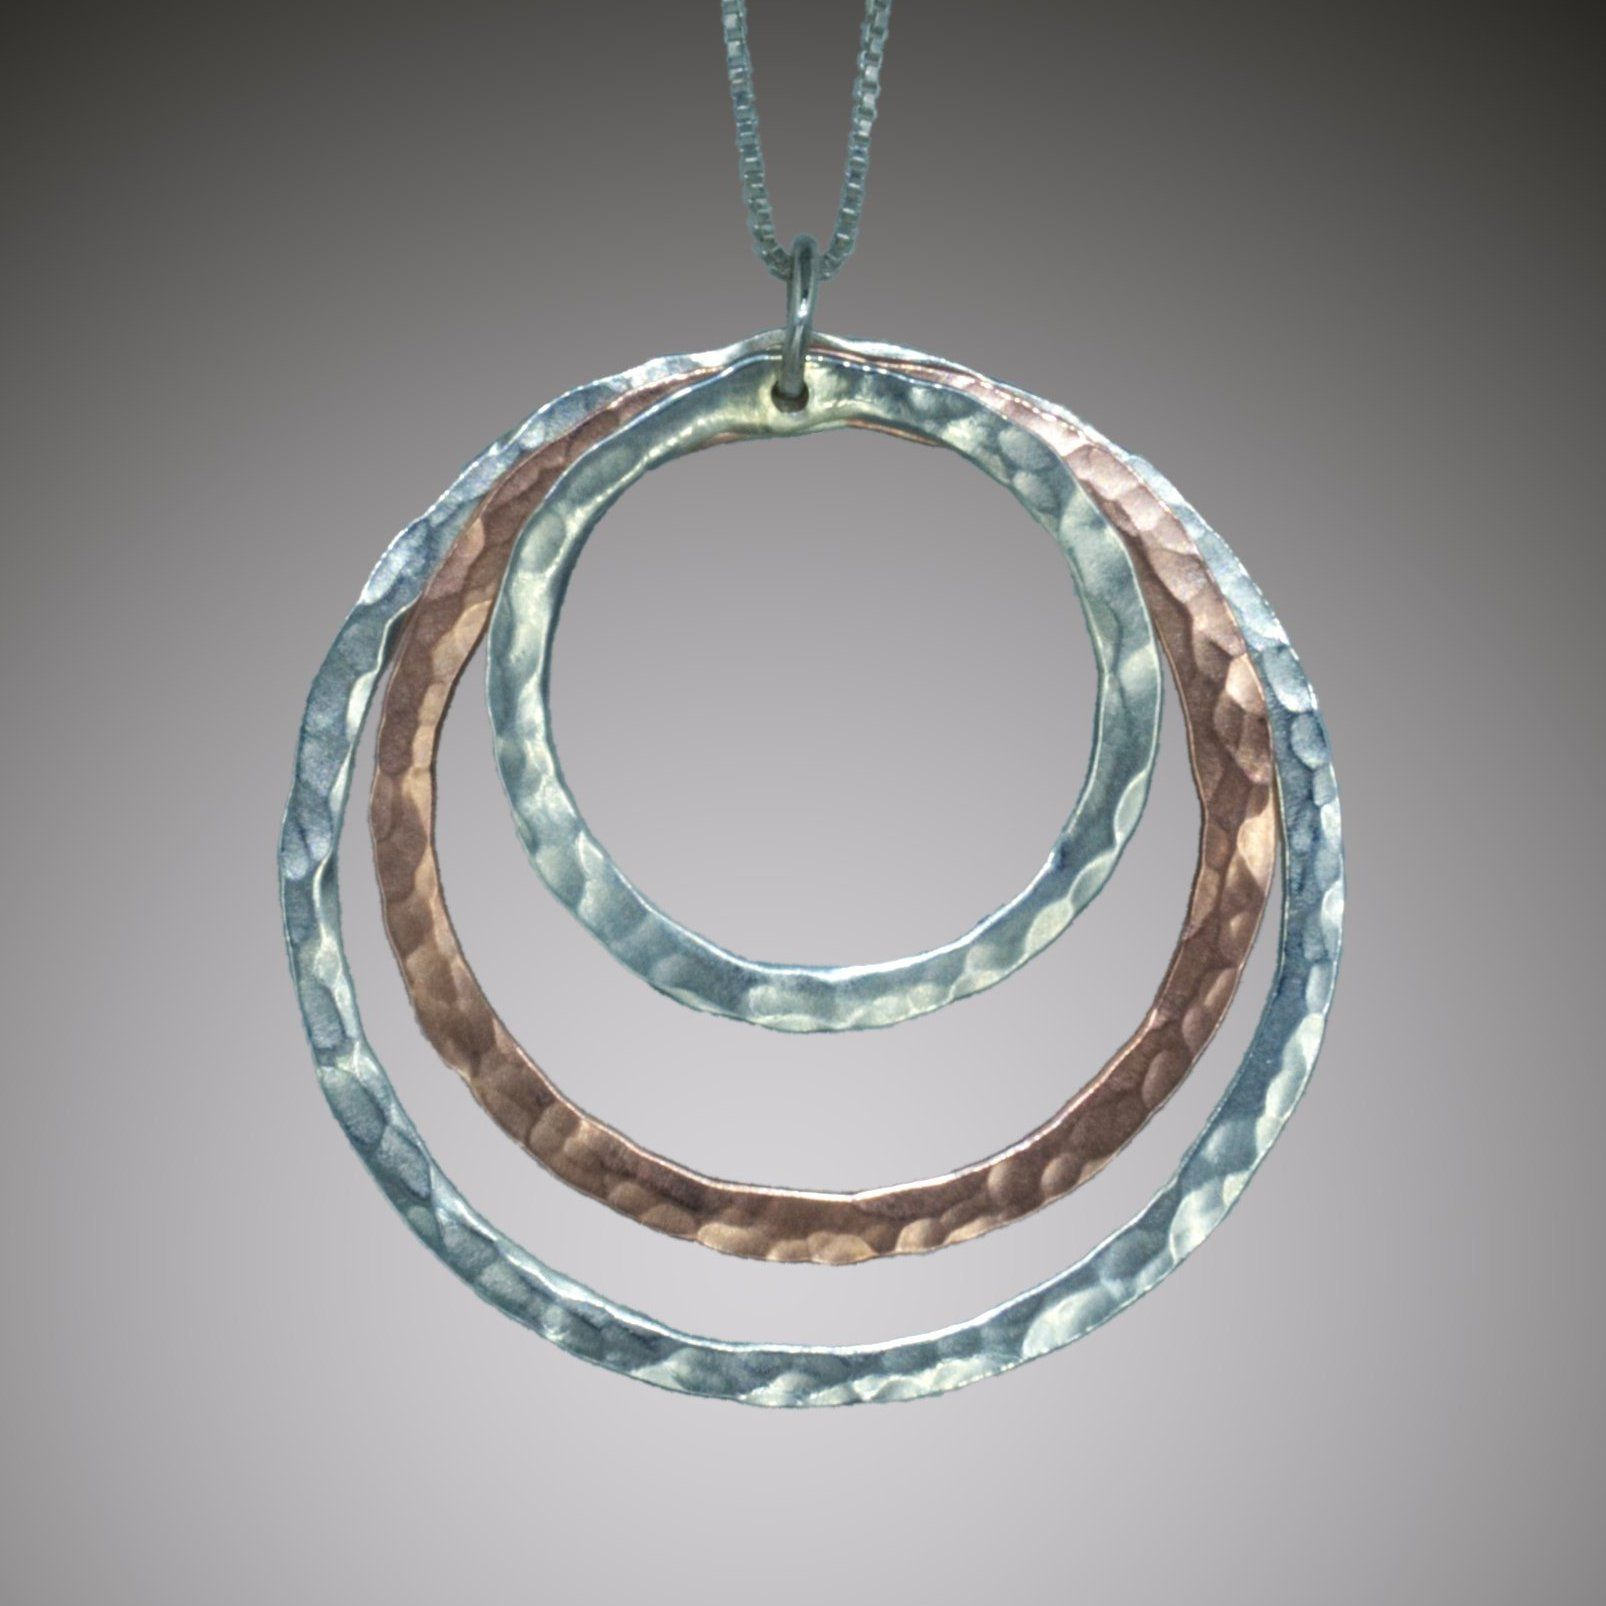 Tangent Circles pendant in sterling silver and copper